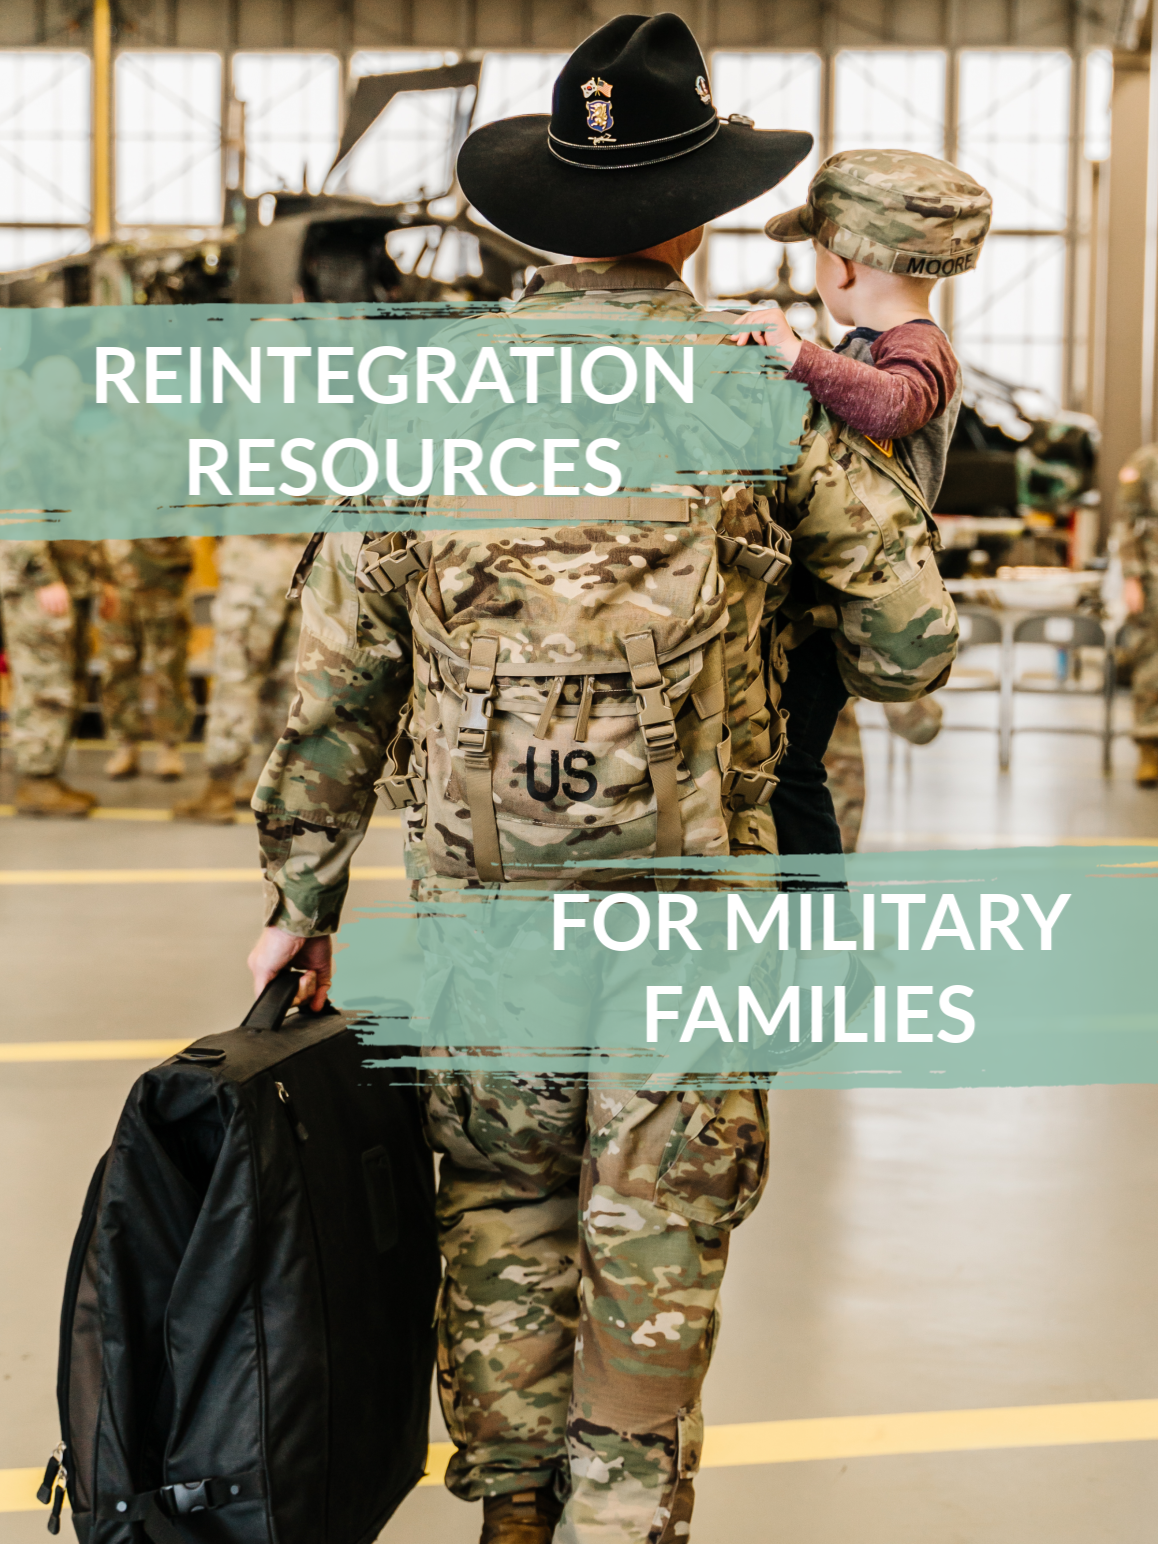 reintegration resources for military families